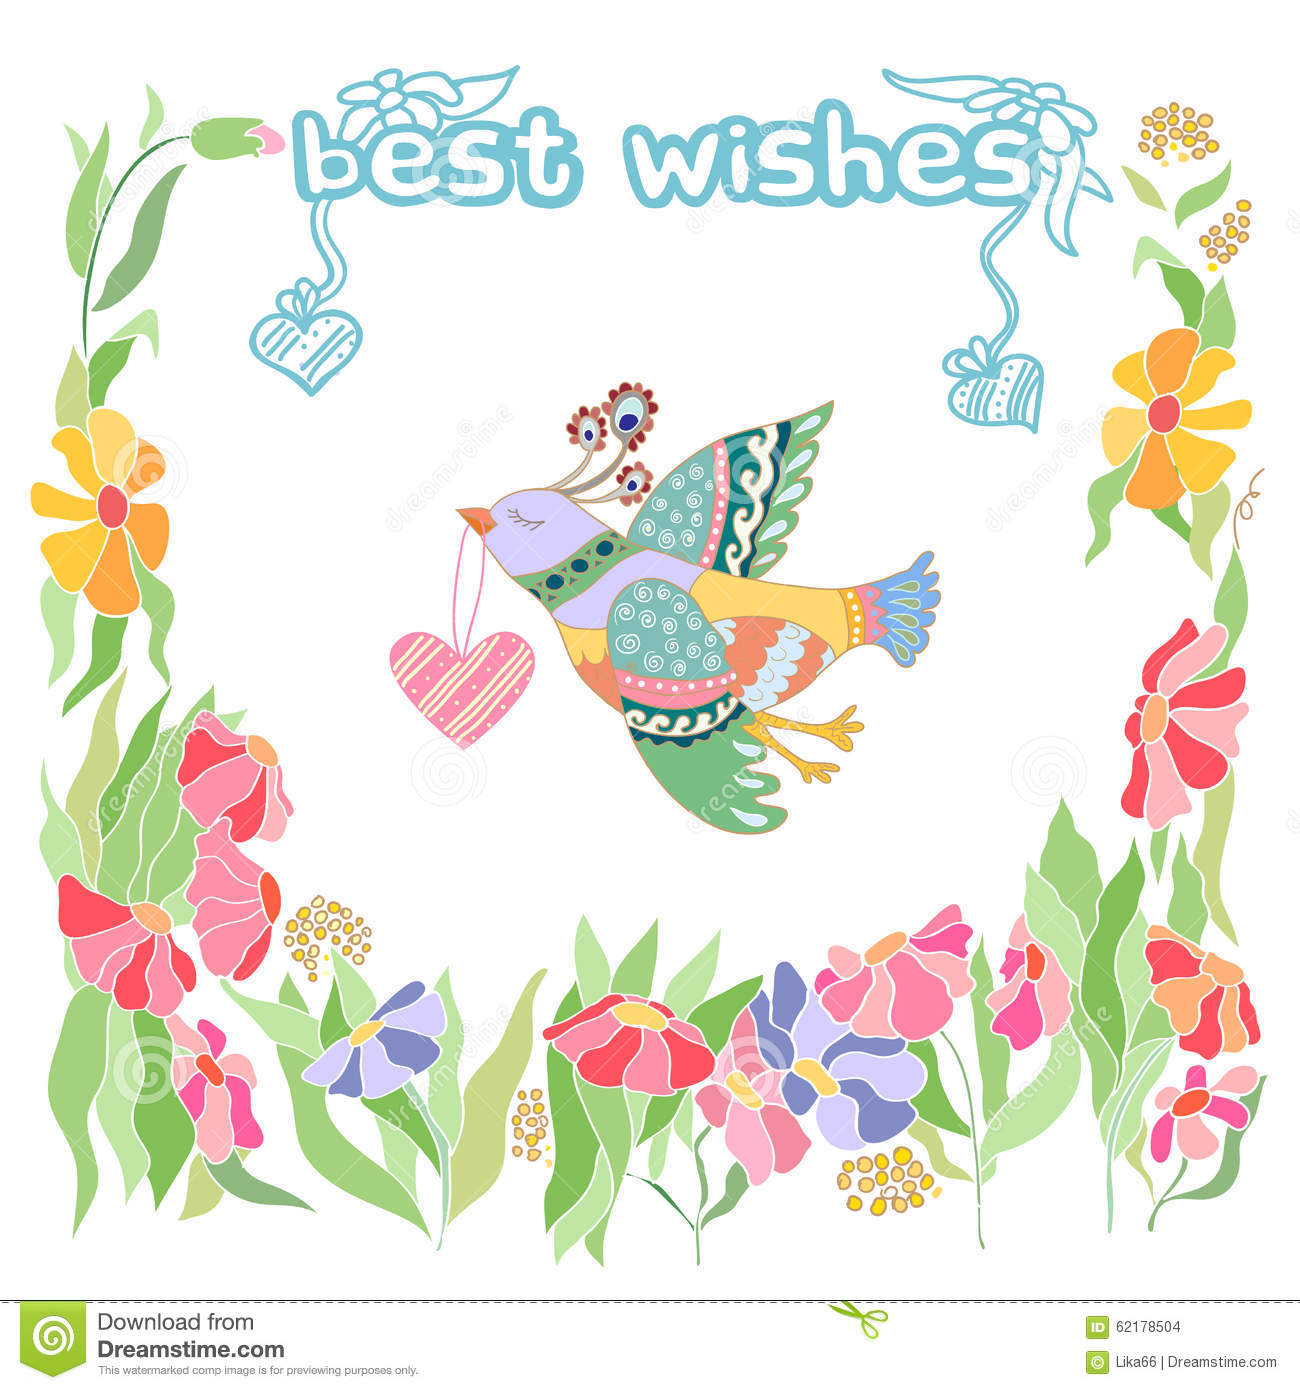 Best wishes greetings with doodle design stock vector illustration best wishes greetings with doodle design stock vector illustration of greetings educational 62178504 m4hsunfo